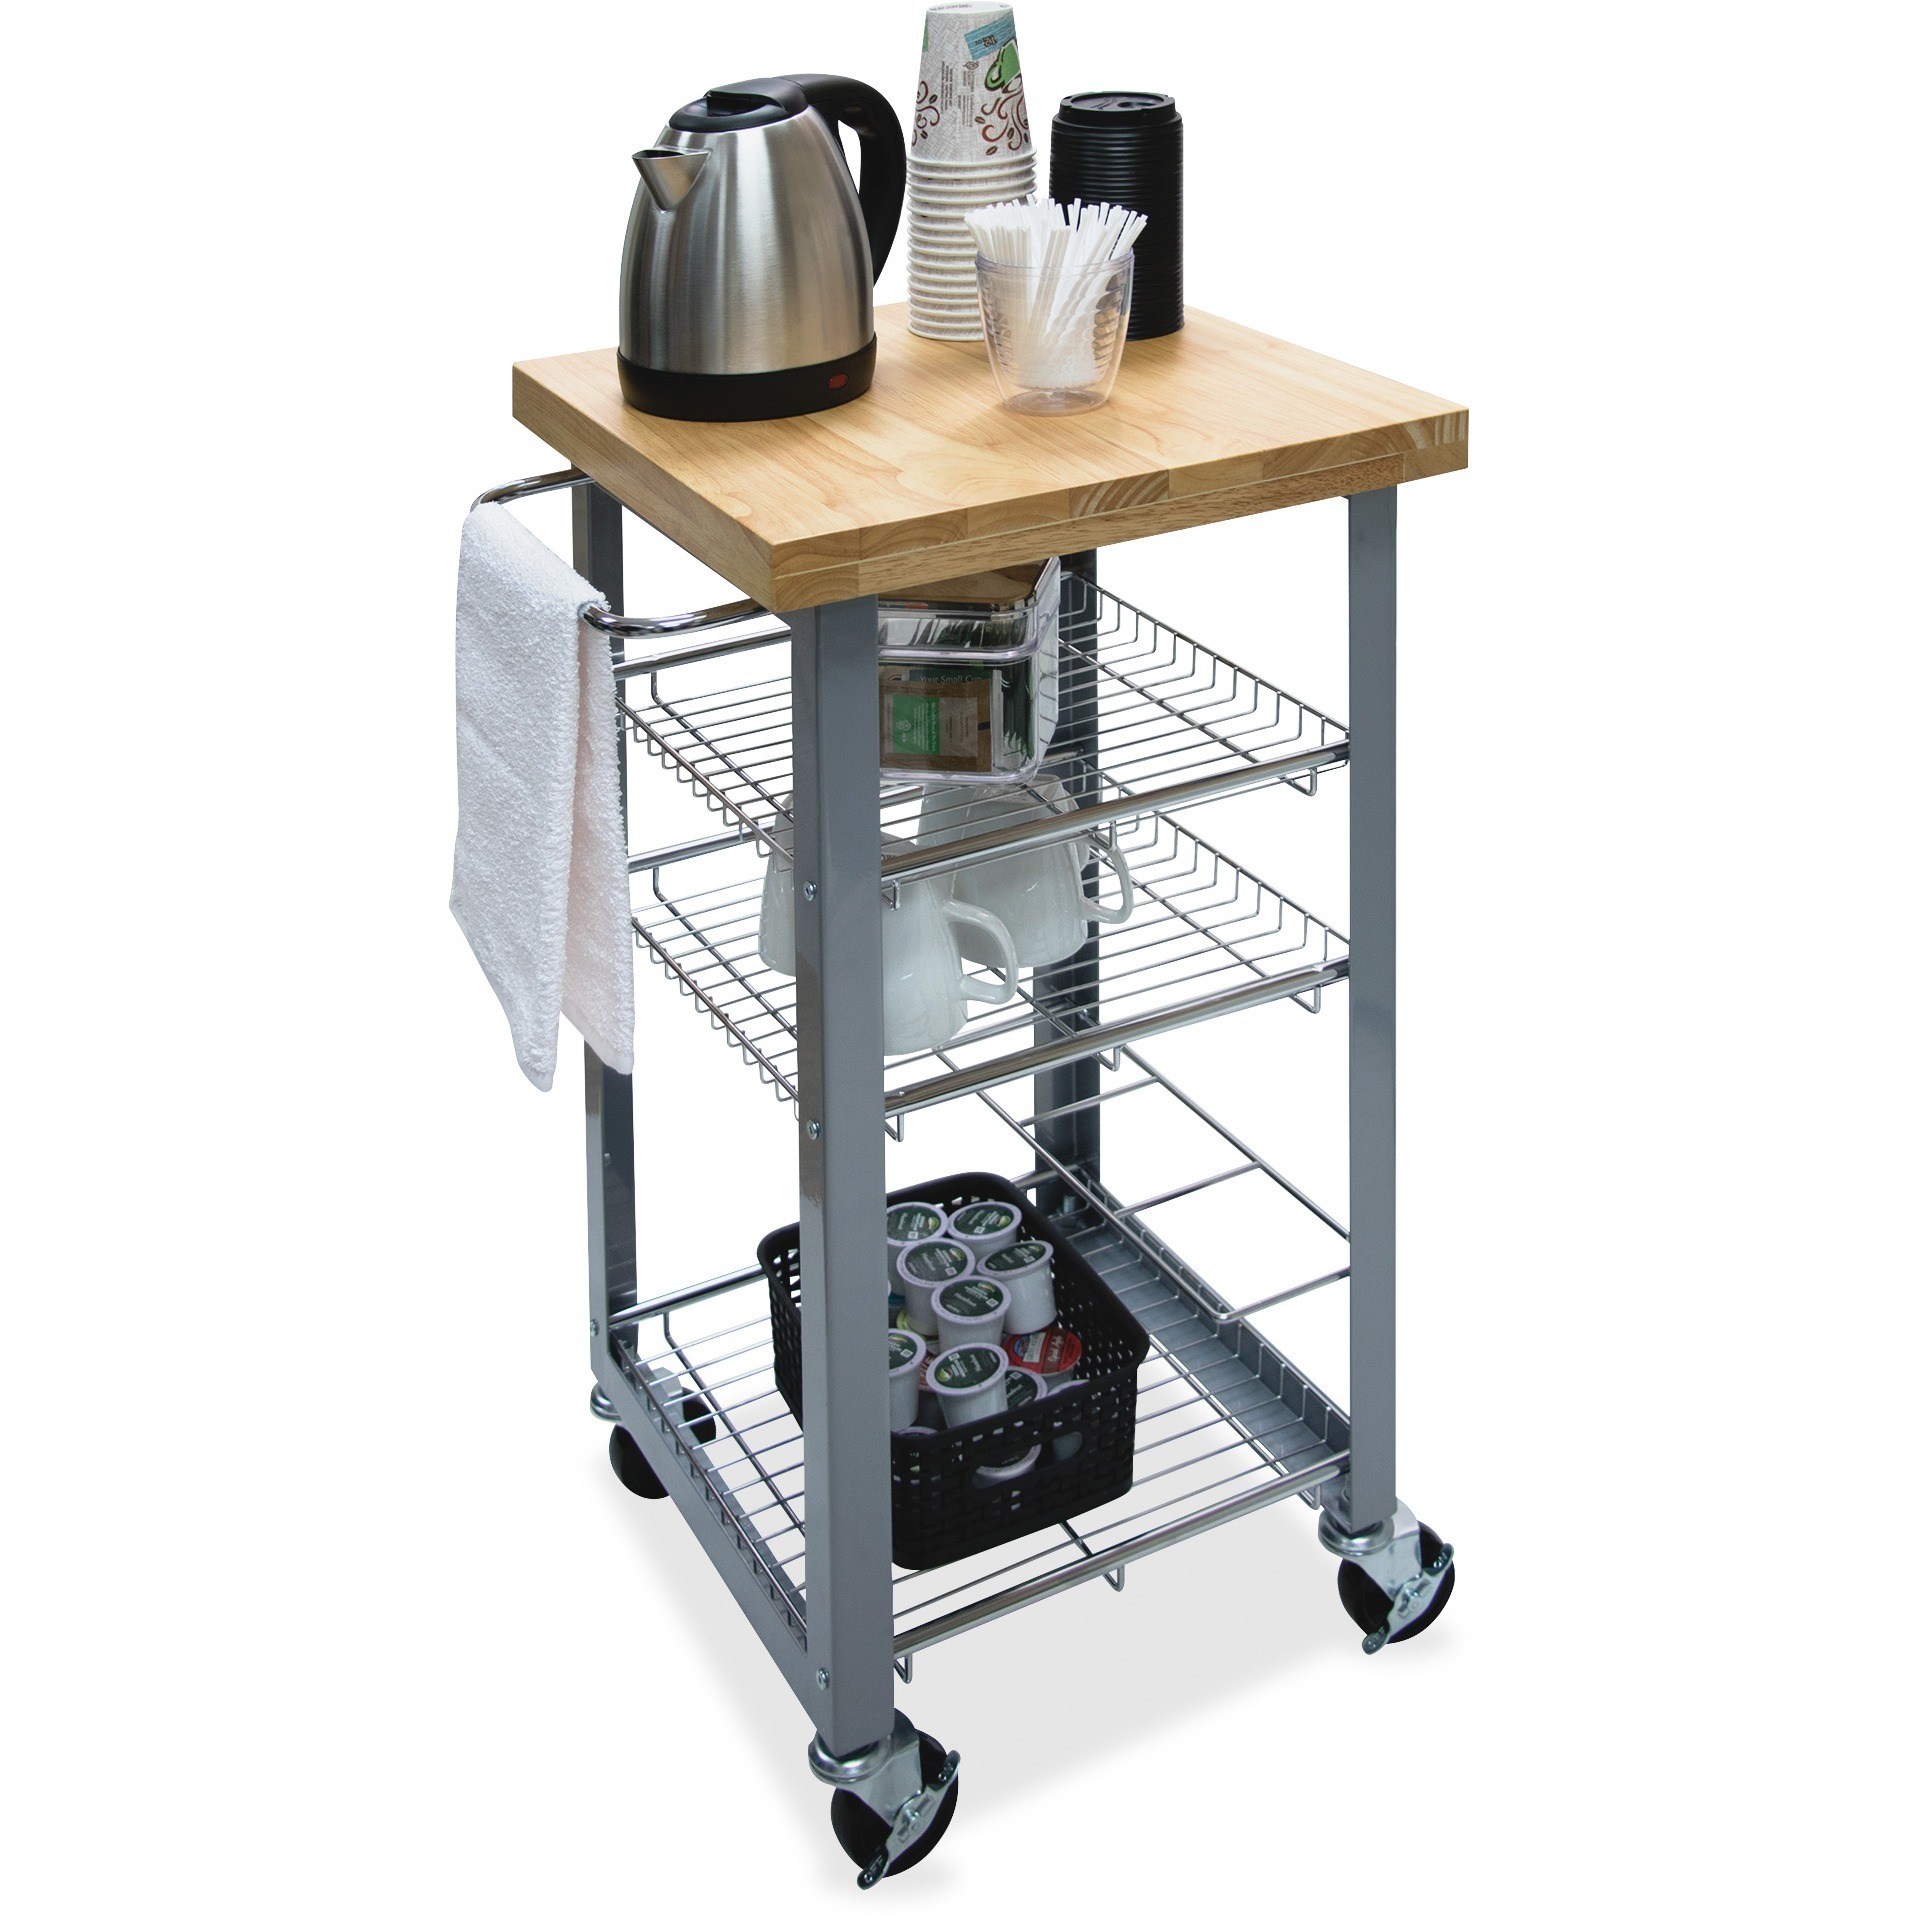 Vertiflex, VRTVF53038, Companion Serving Cart, 1 Each, Assorted